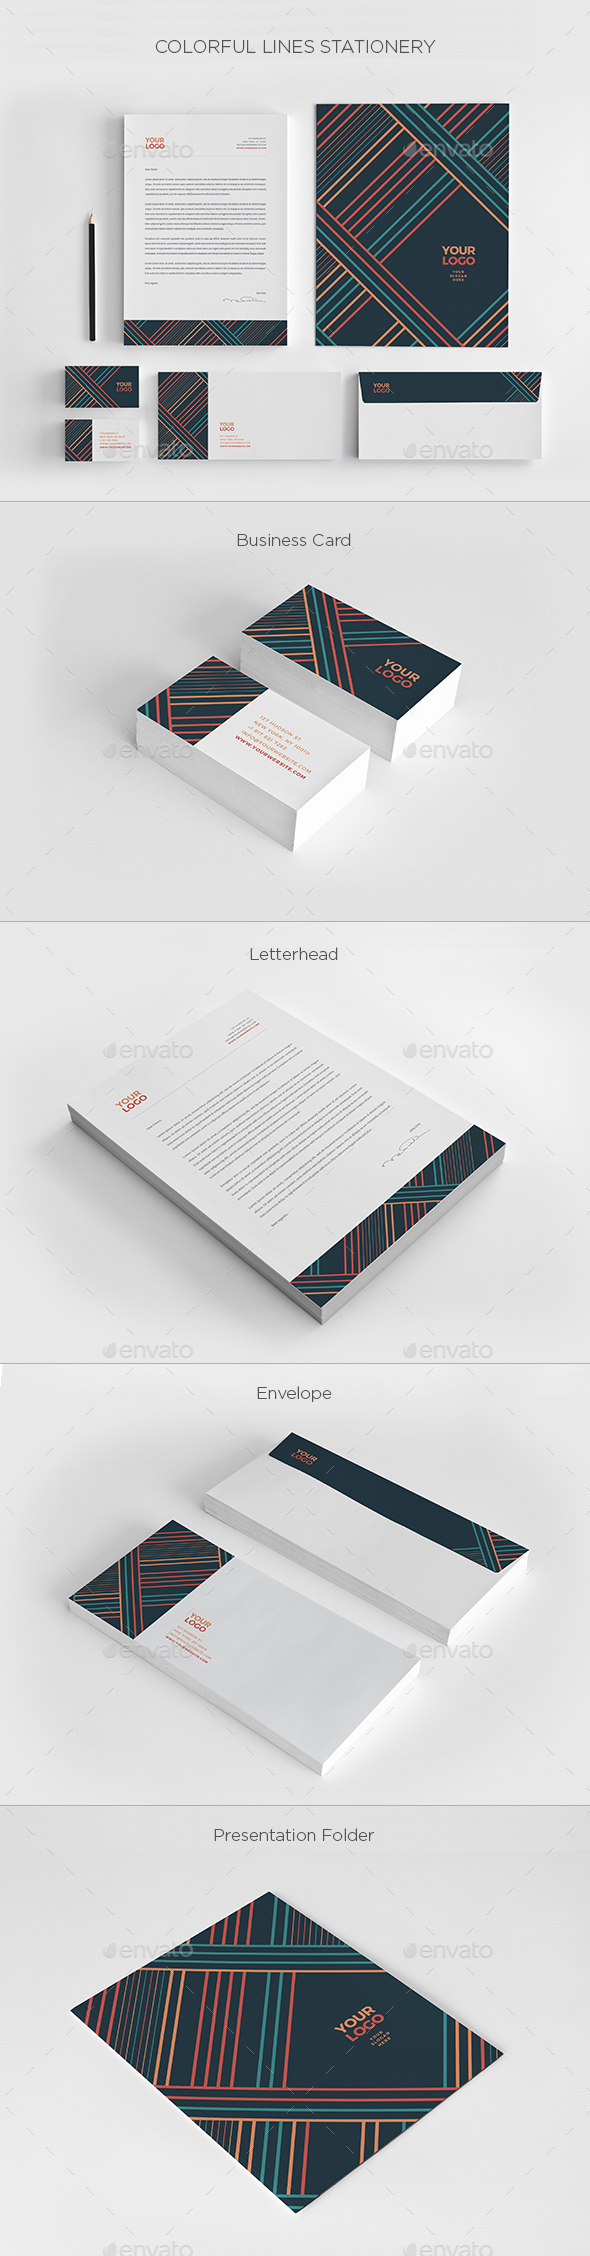 Colorful Lines Stationery - Stationery Print Templates